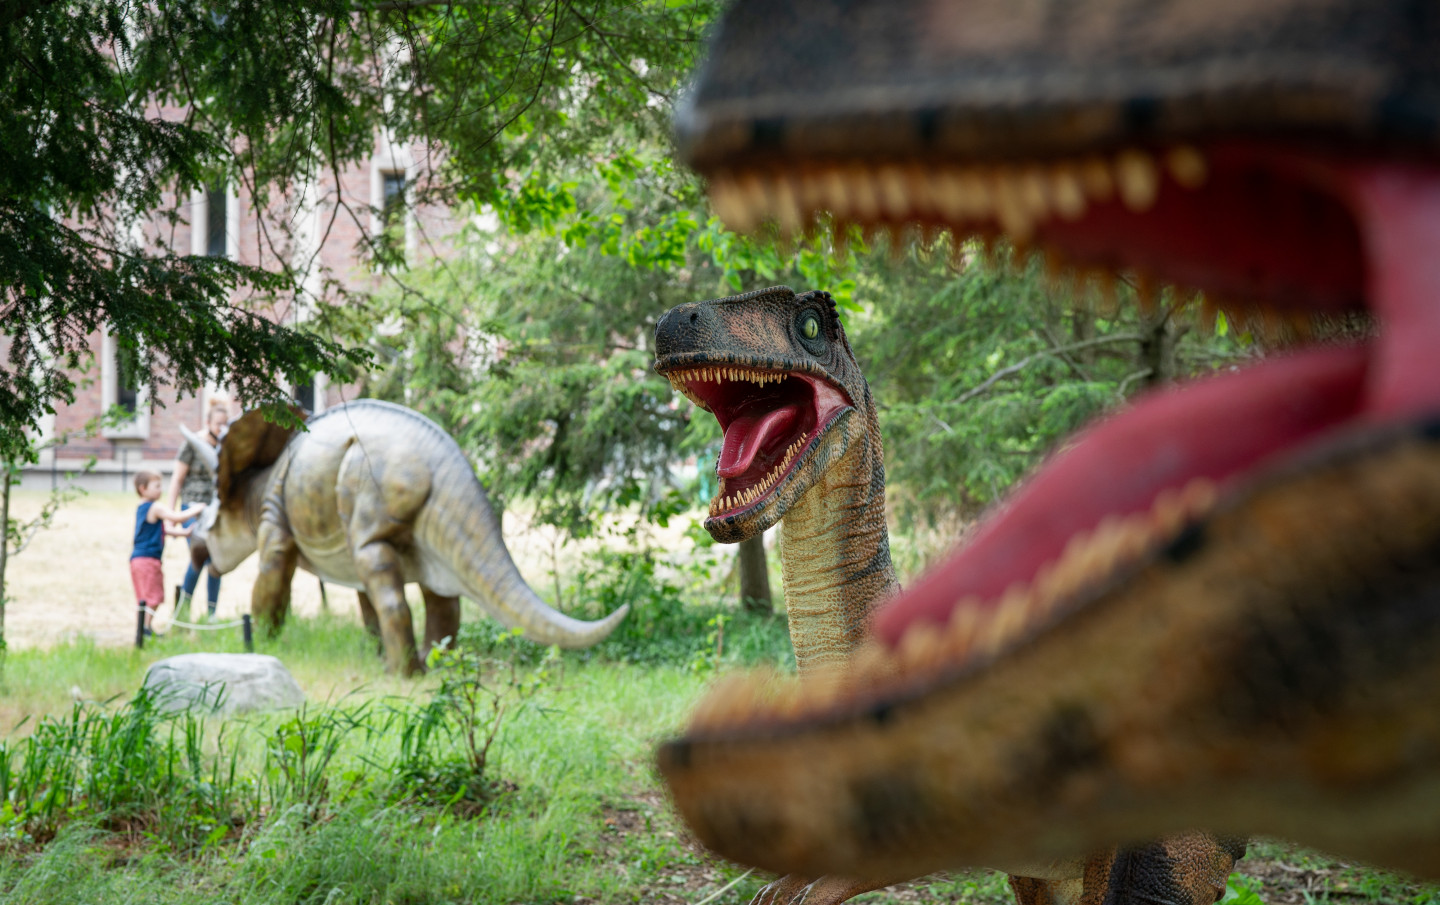 A photo of a utahraptor taken through the jaws of another dinosaur.